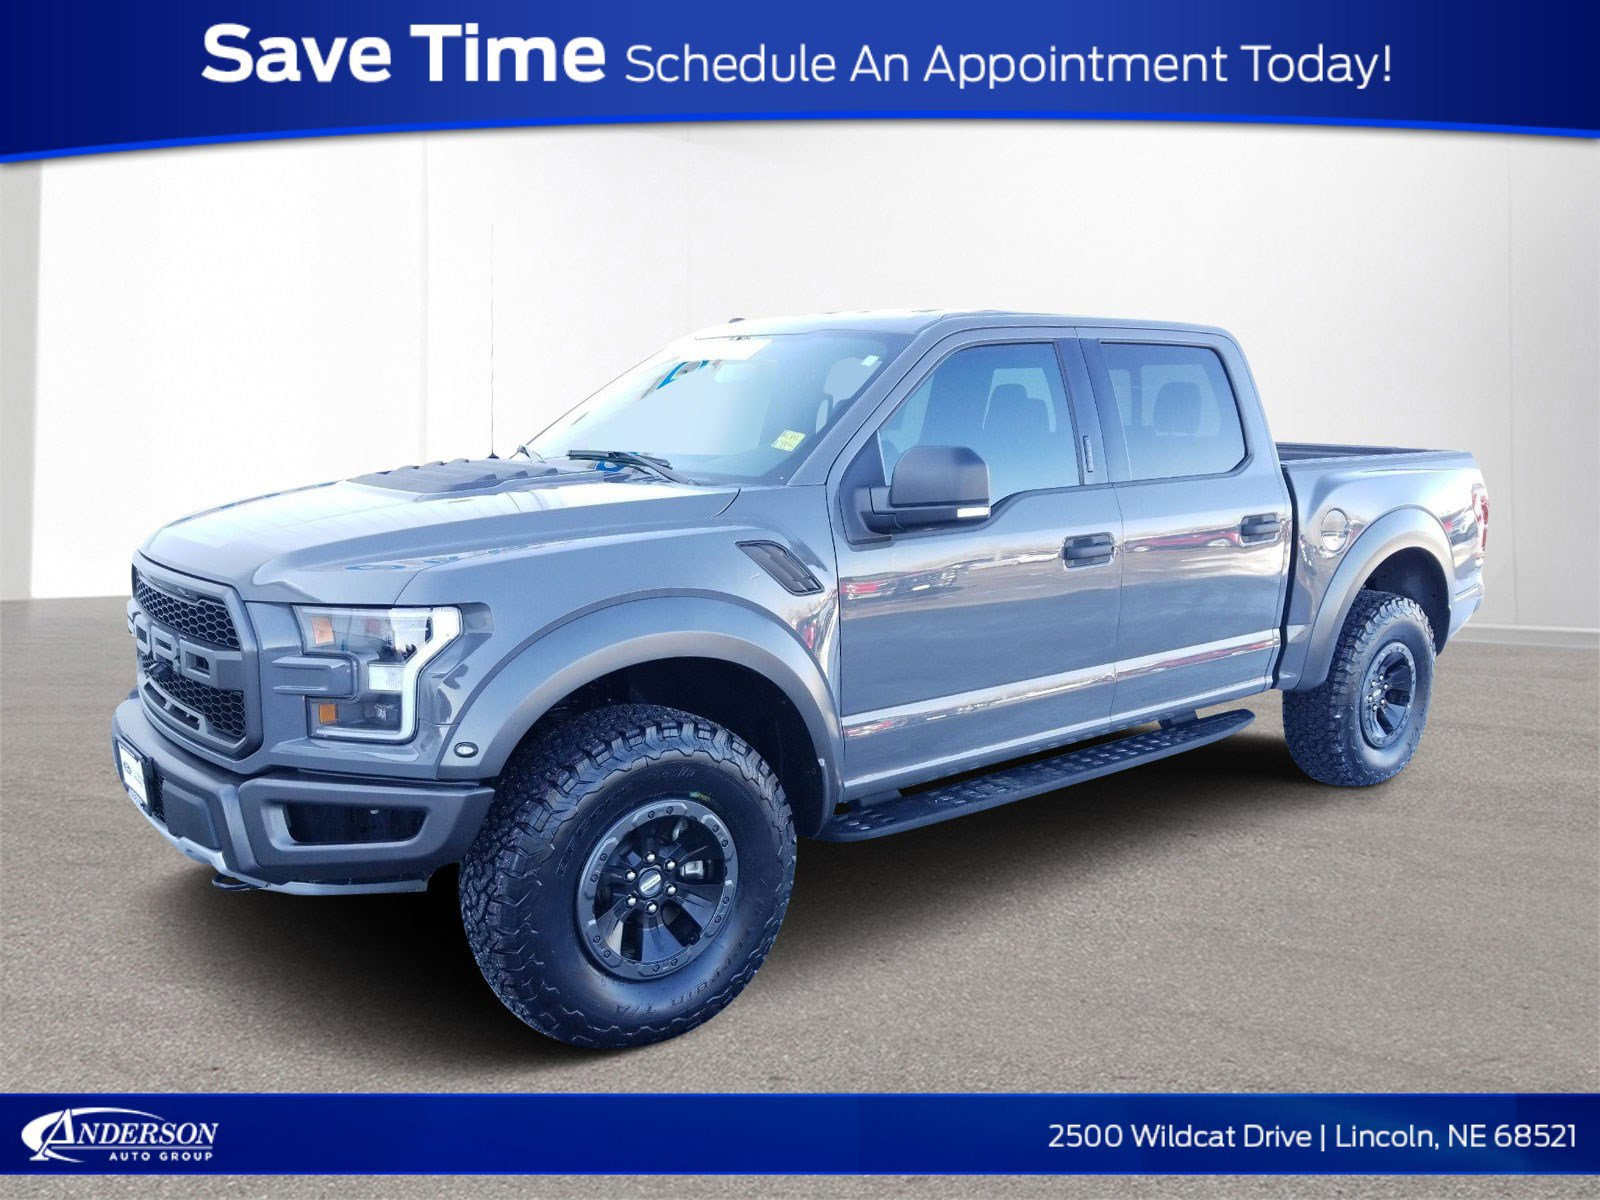 Used 2018 Ford F-150 Raptor Crew Cab Pickup for sale in Lincoln NE